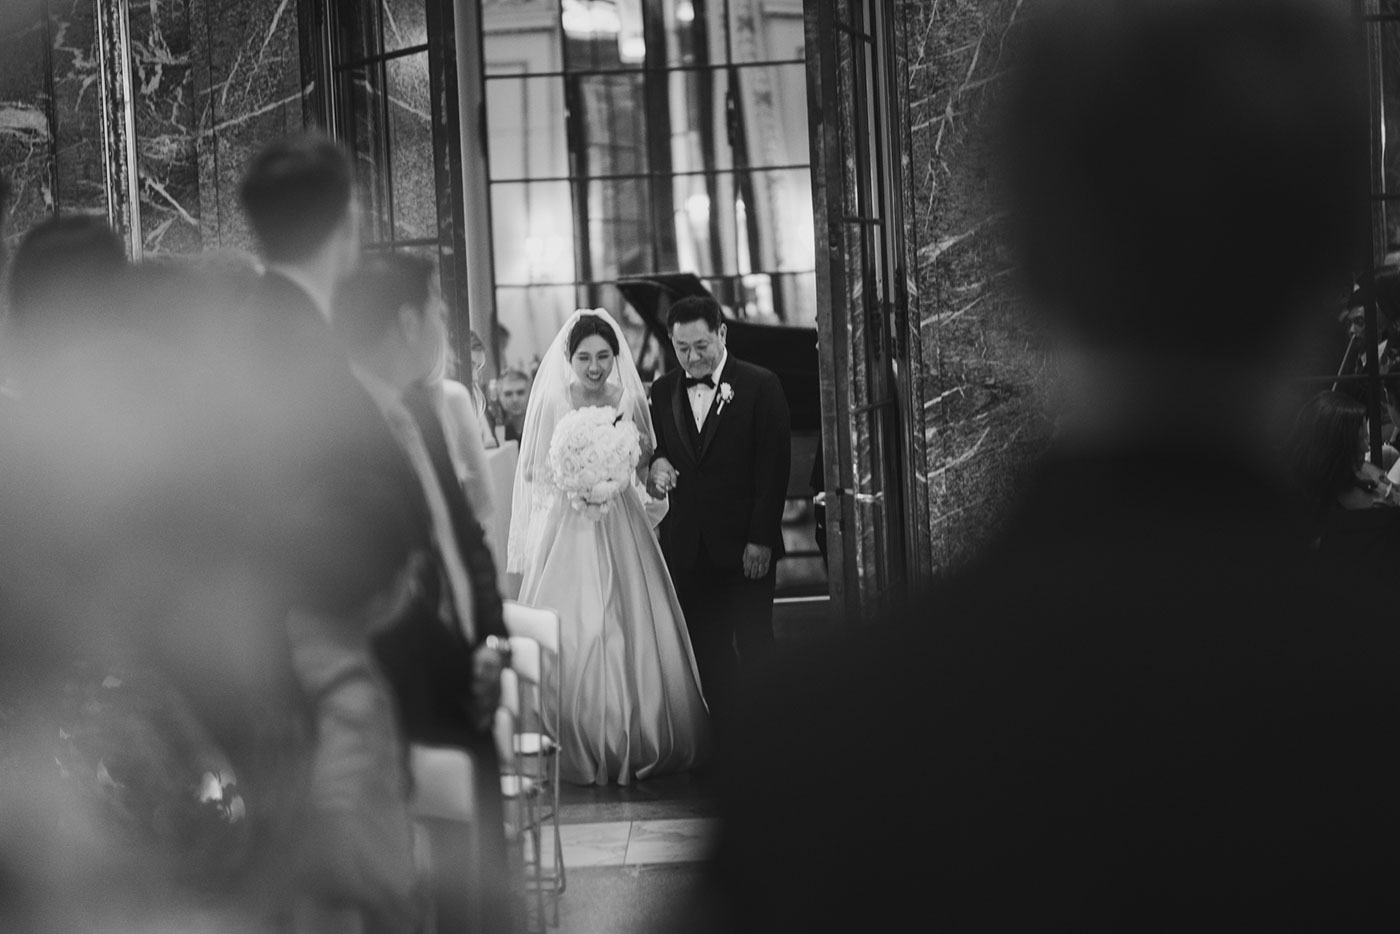 Bride entering ceremony at the James Burden Kahn Mansion by Weddings by Hanel